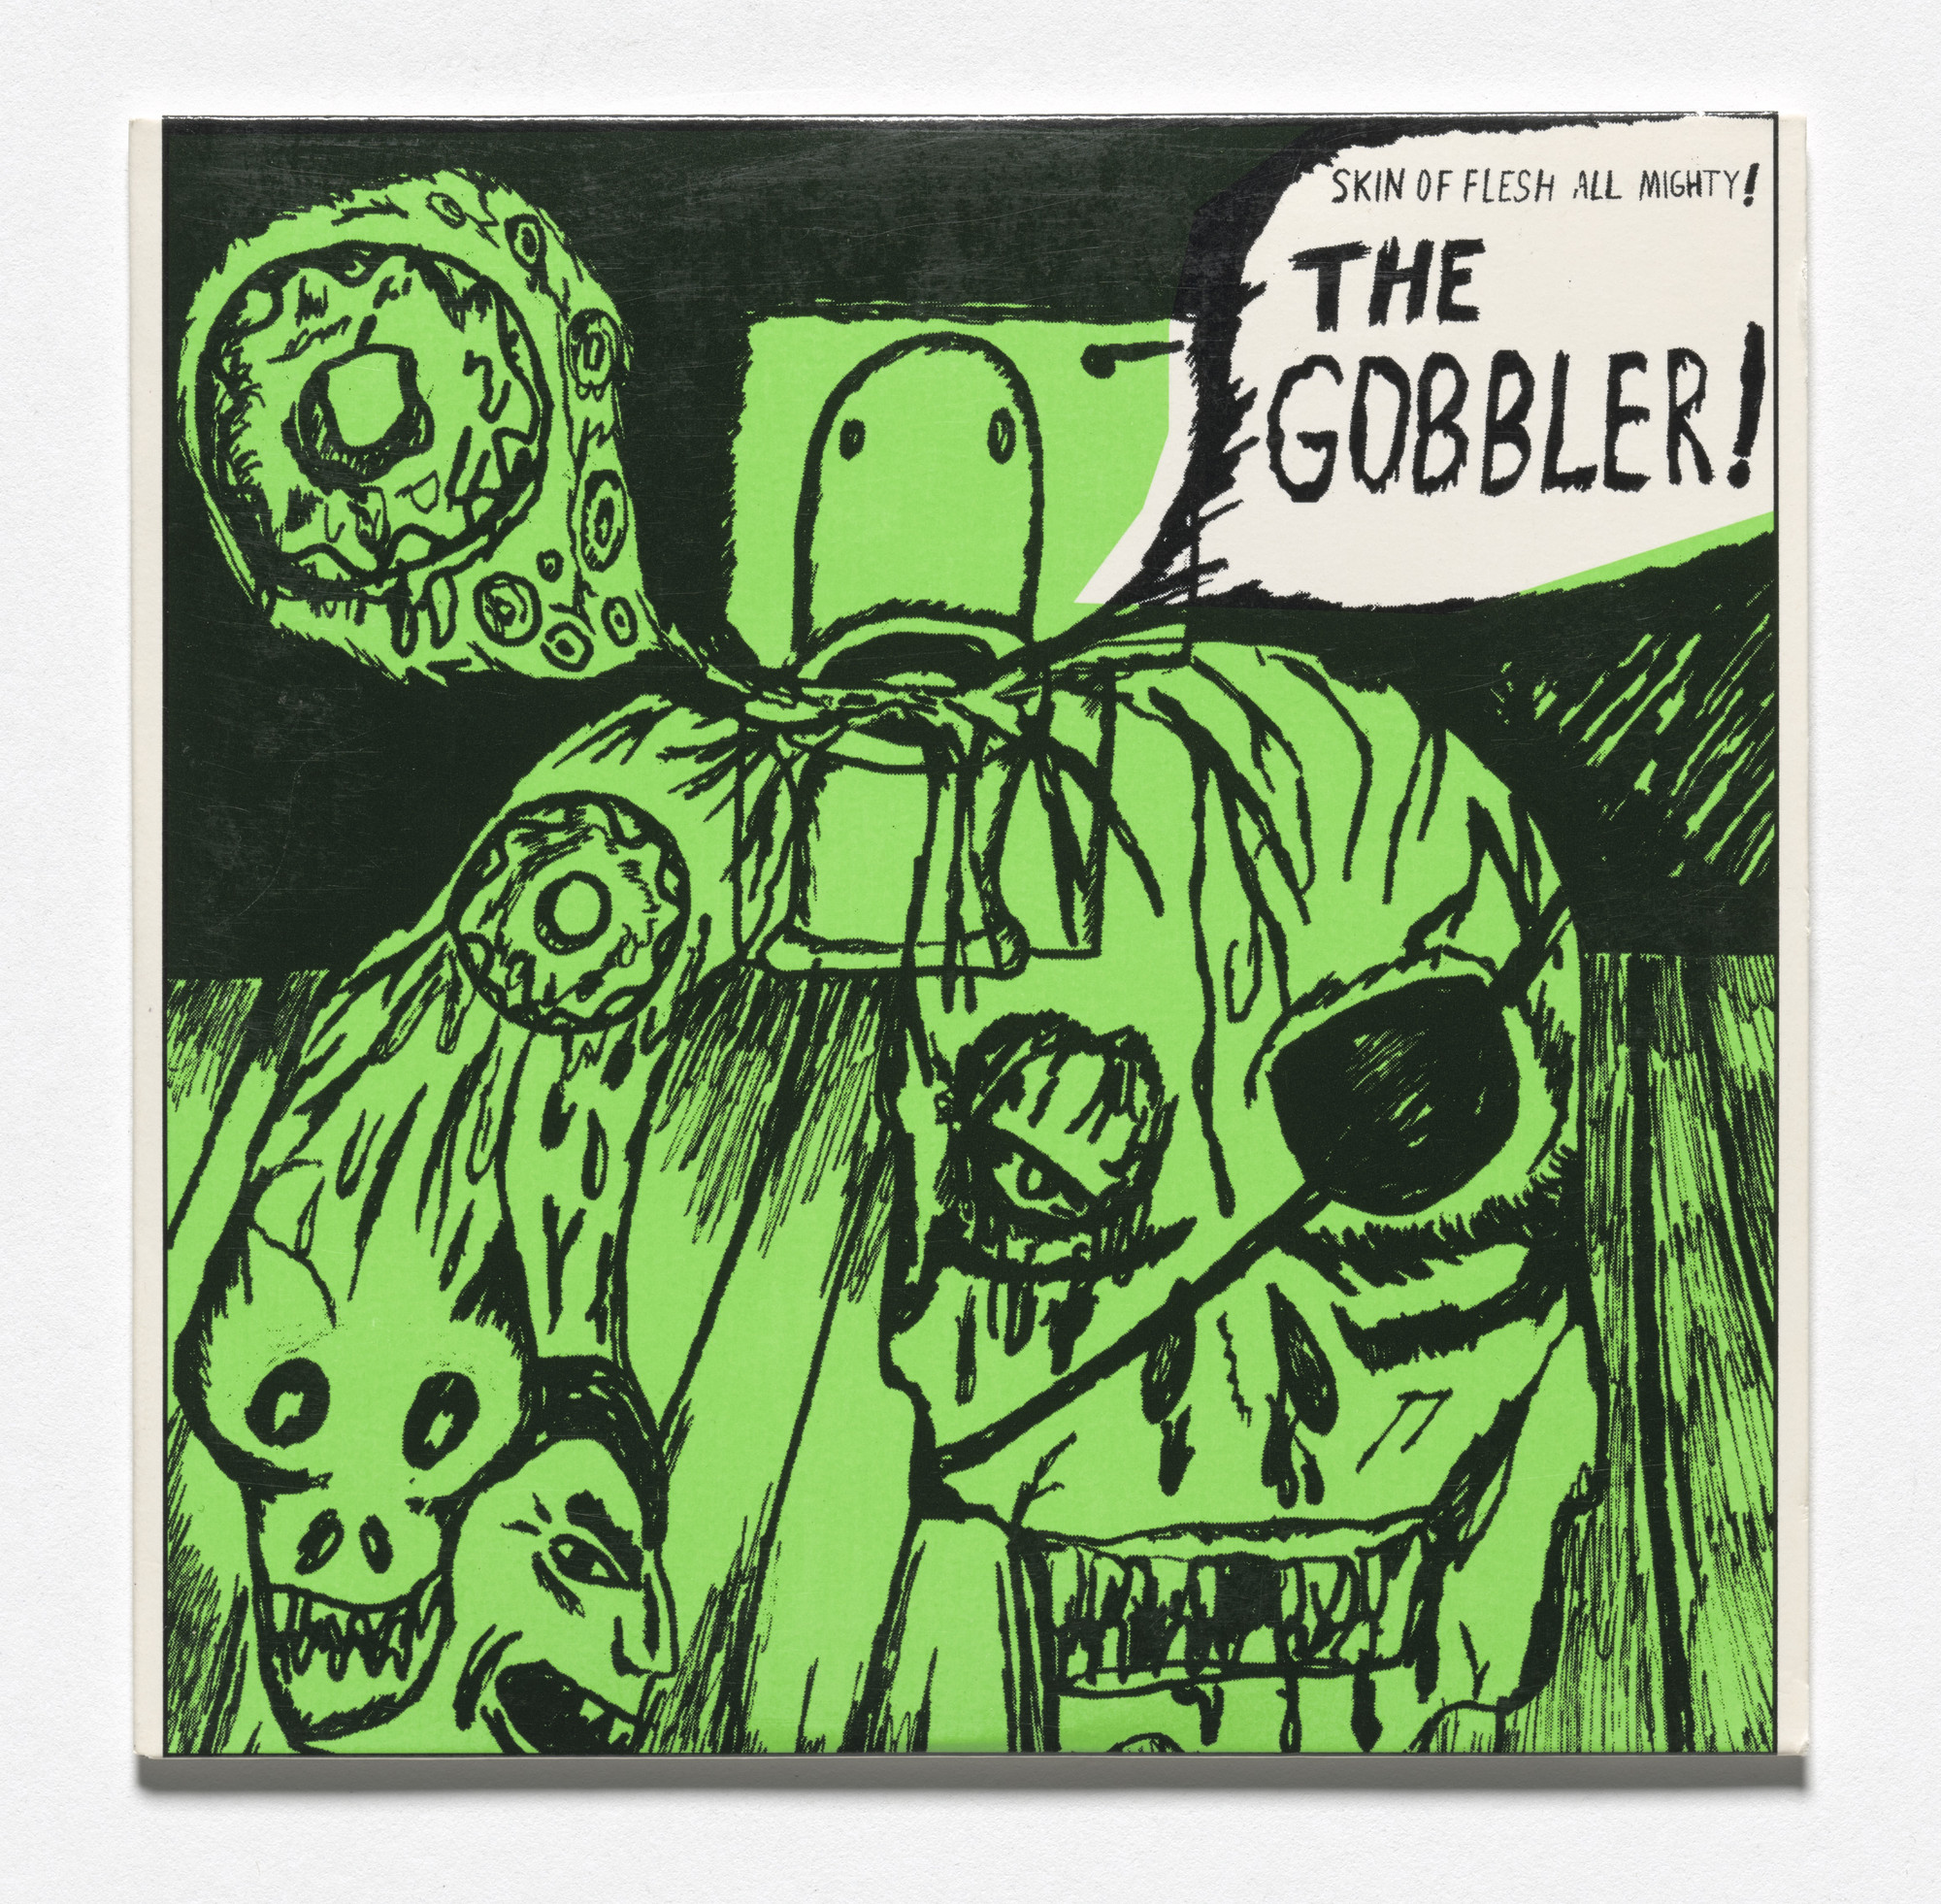 Gobbler, Art Byington, Cameron Jamie, Mike Kelley, Paul McCarthy, Dave Muller. Skin of Flesh All Mighty!. 1997